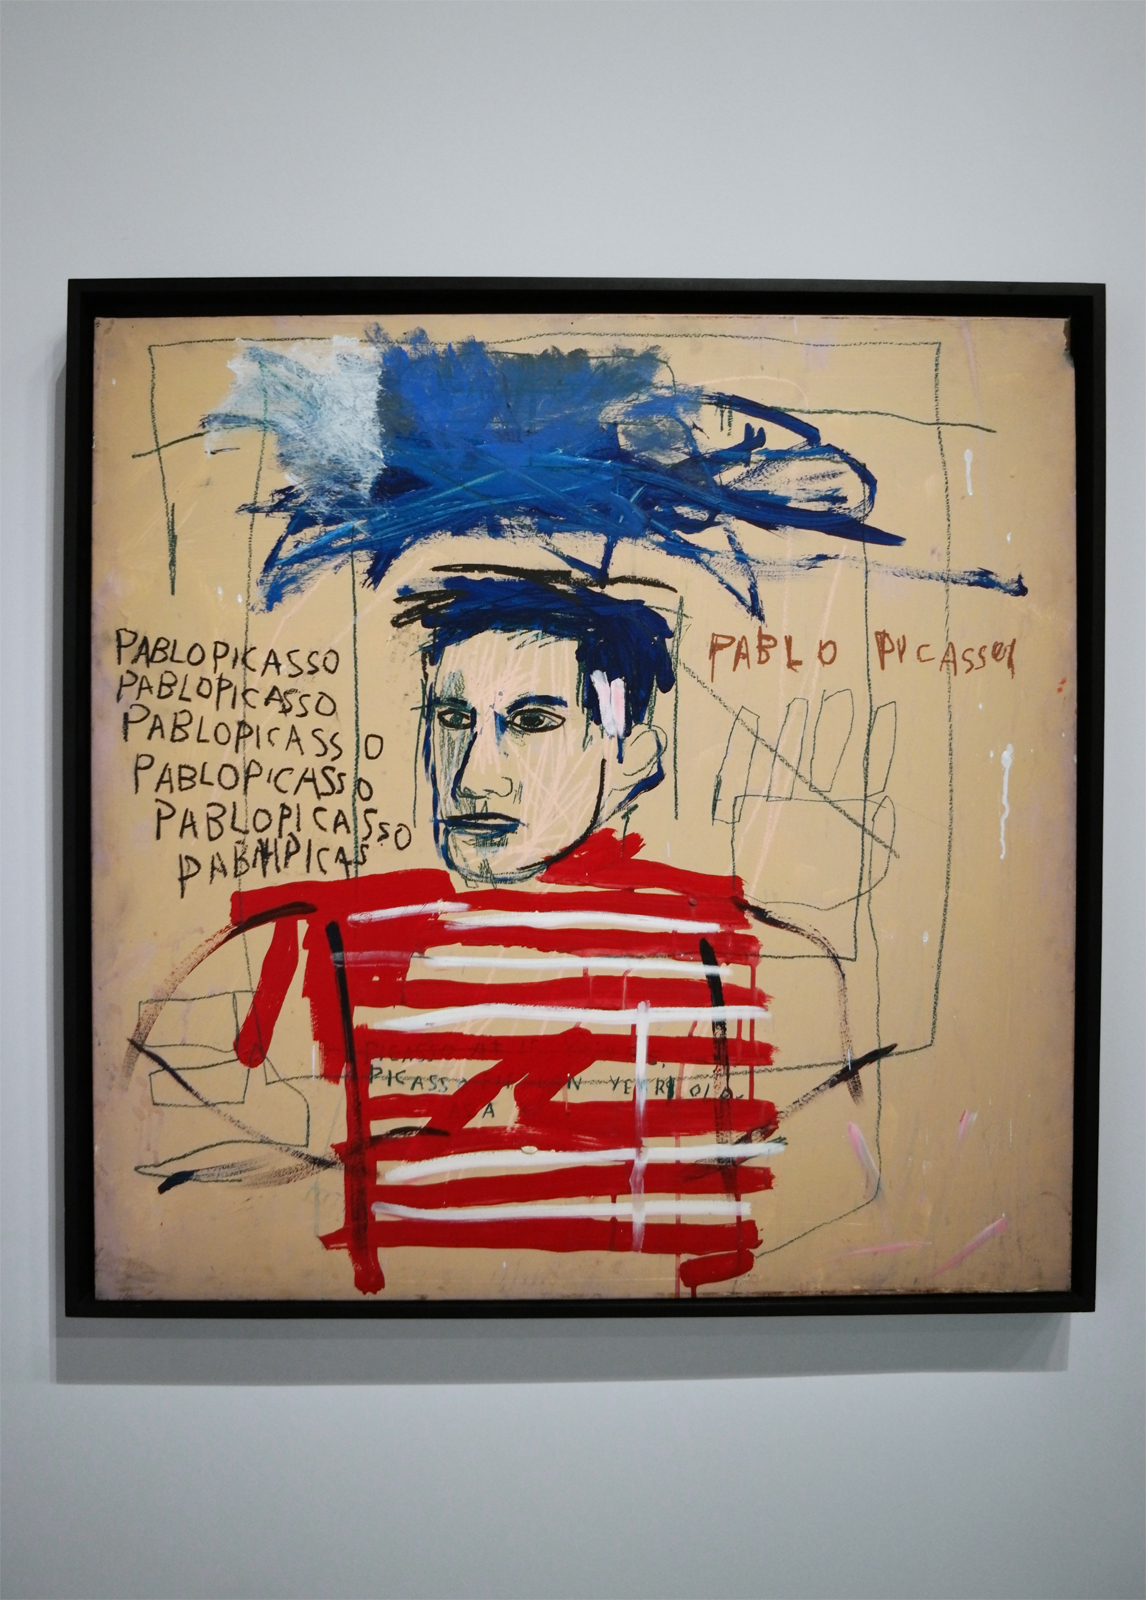 Untitled, 1984, Jean-Michel Basquiat